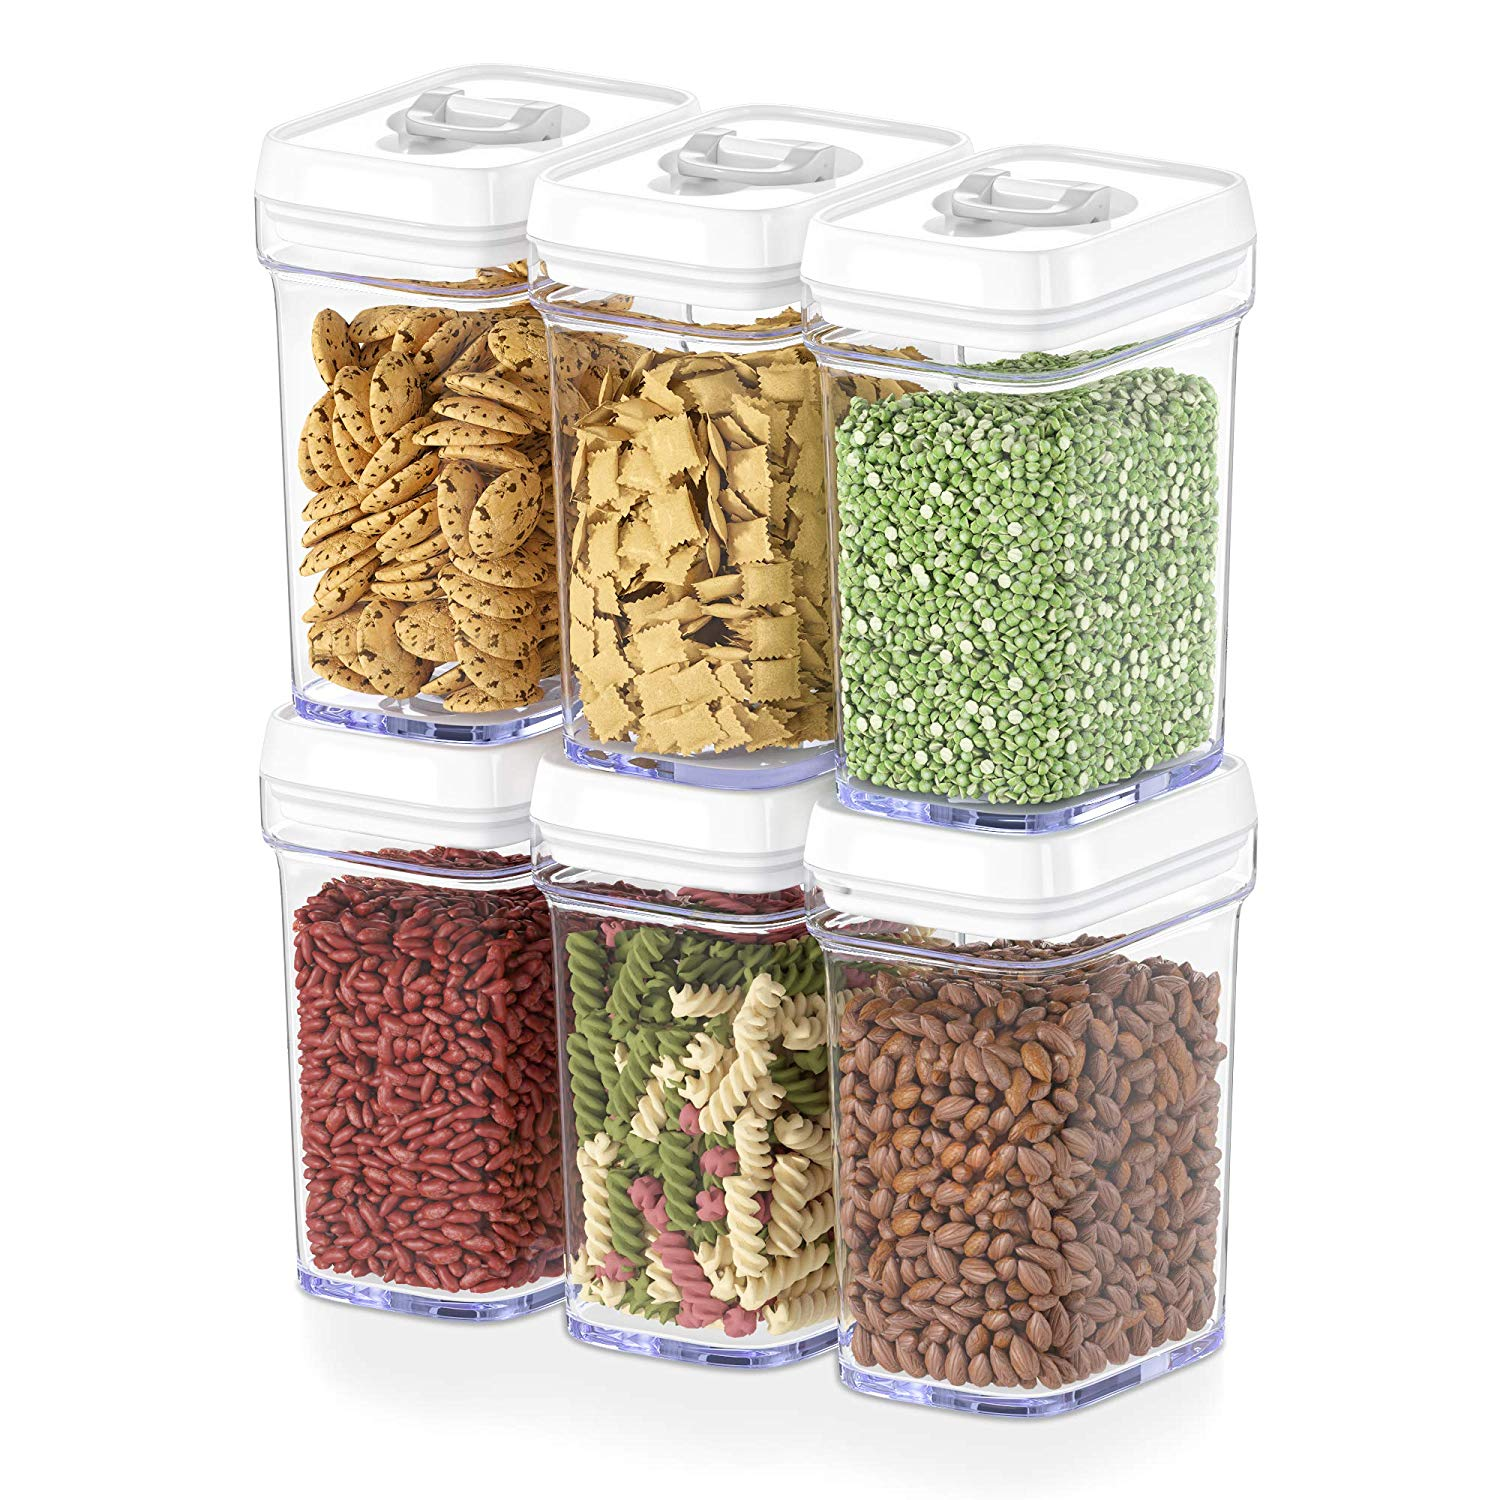 Snapware 23 Cup Rectangle Food Storage Container w/ Fliptop Lid # 1098426